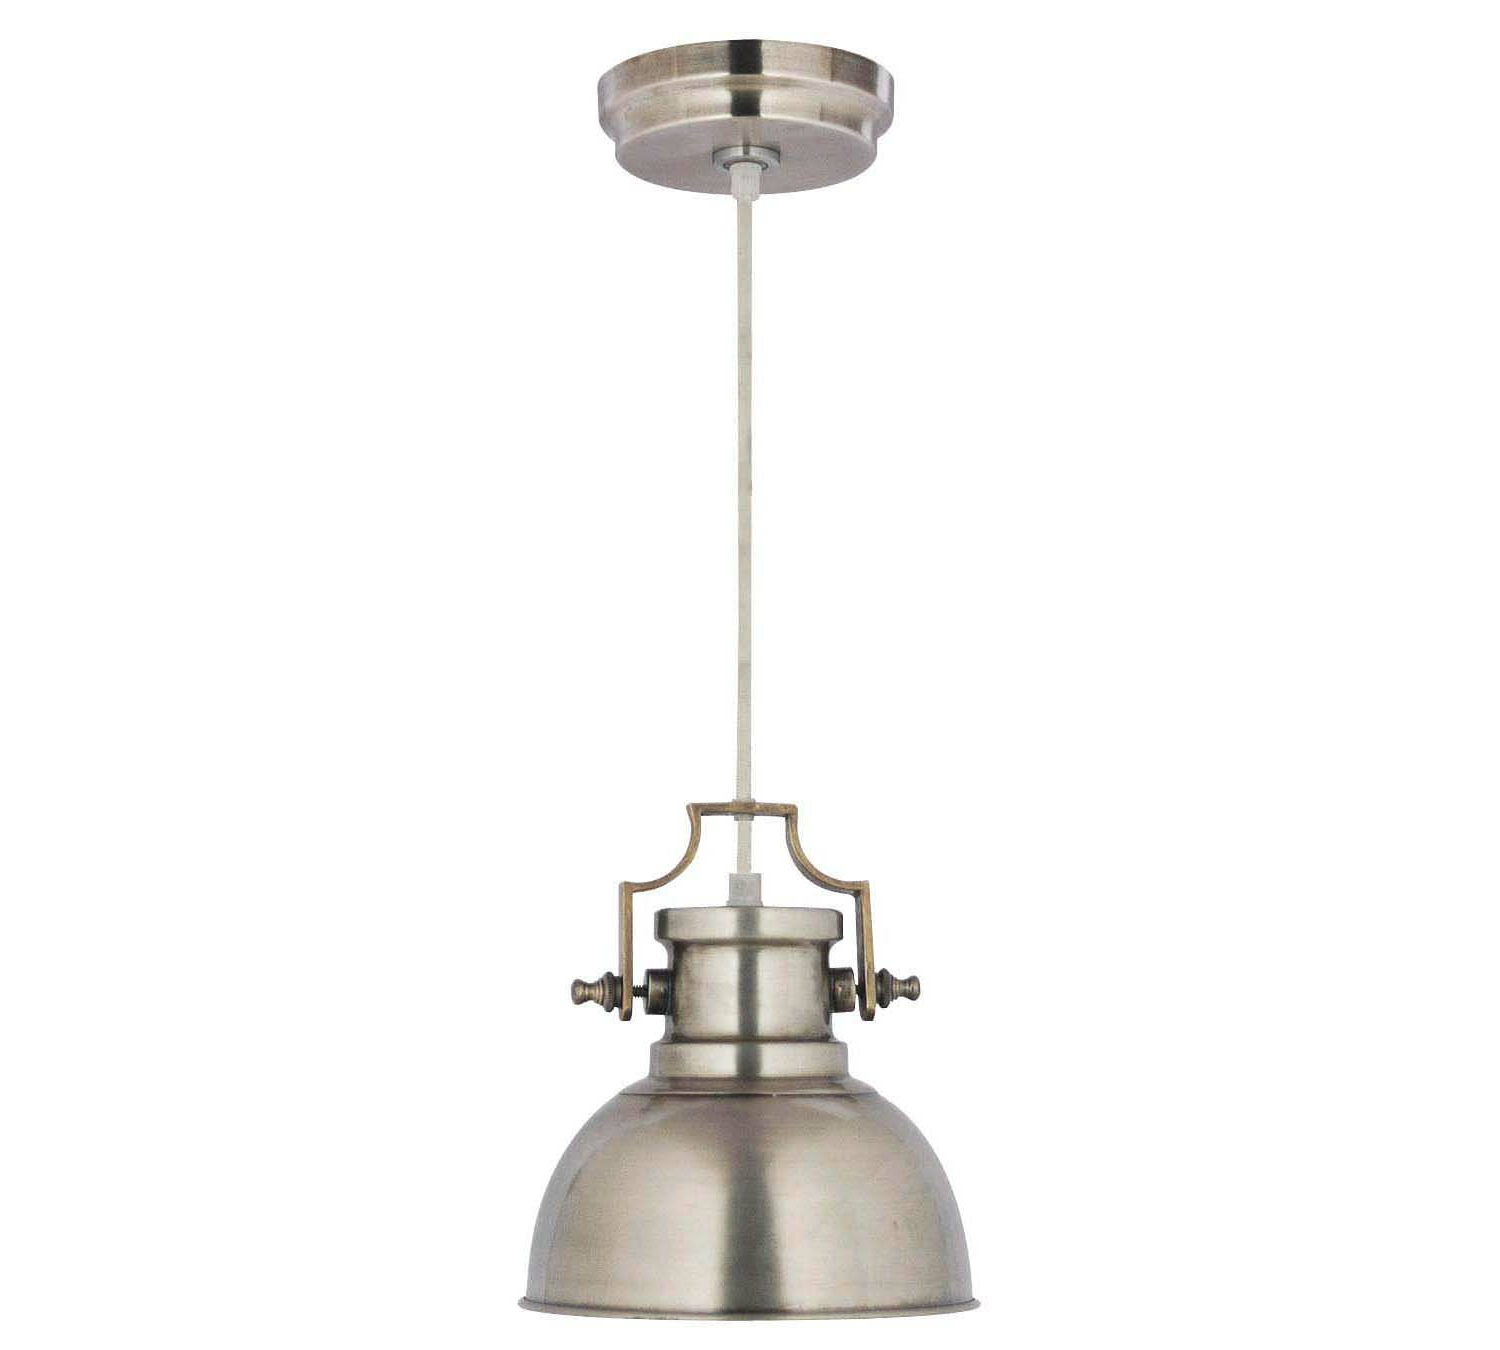 Mueller 1 Light Single Dome Pendants Within Most Recent Jules 1 Light Single Dome Pendant (View 9 of 25)